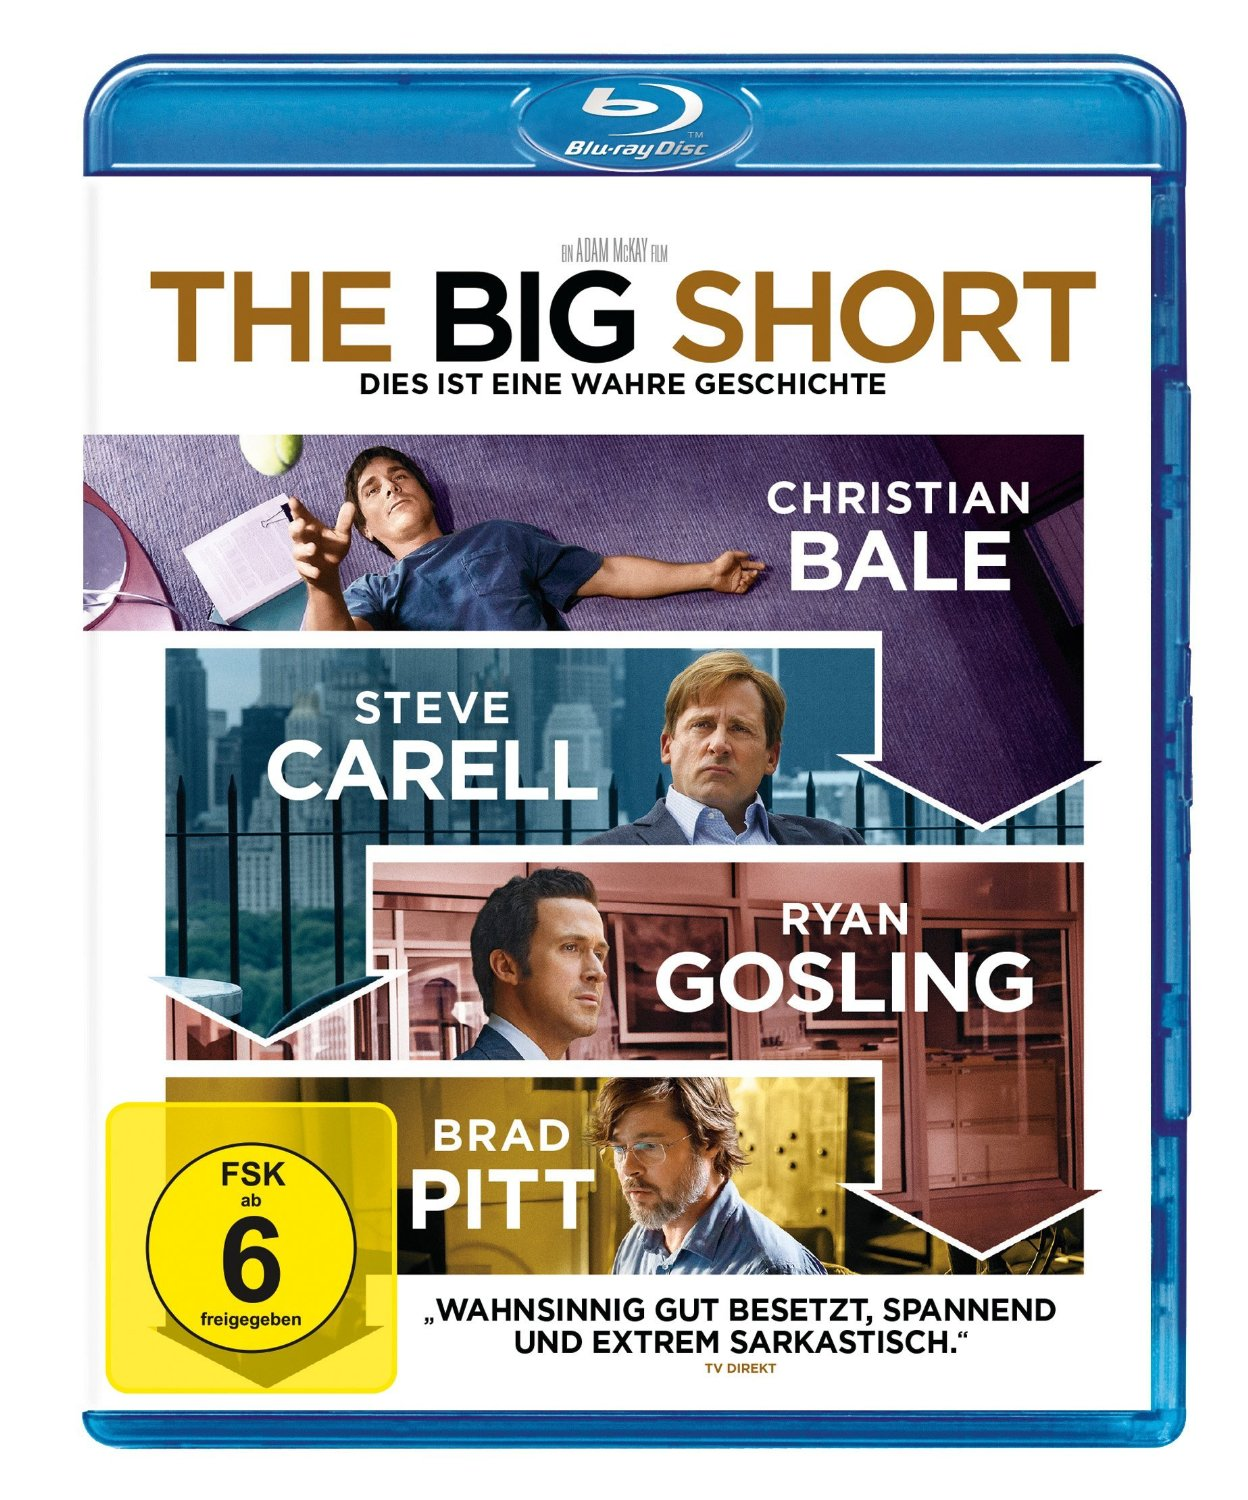 DVD-Cover von The Big Short